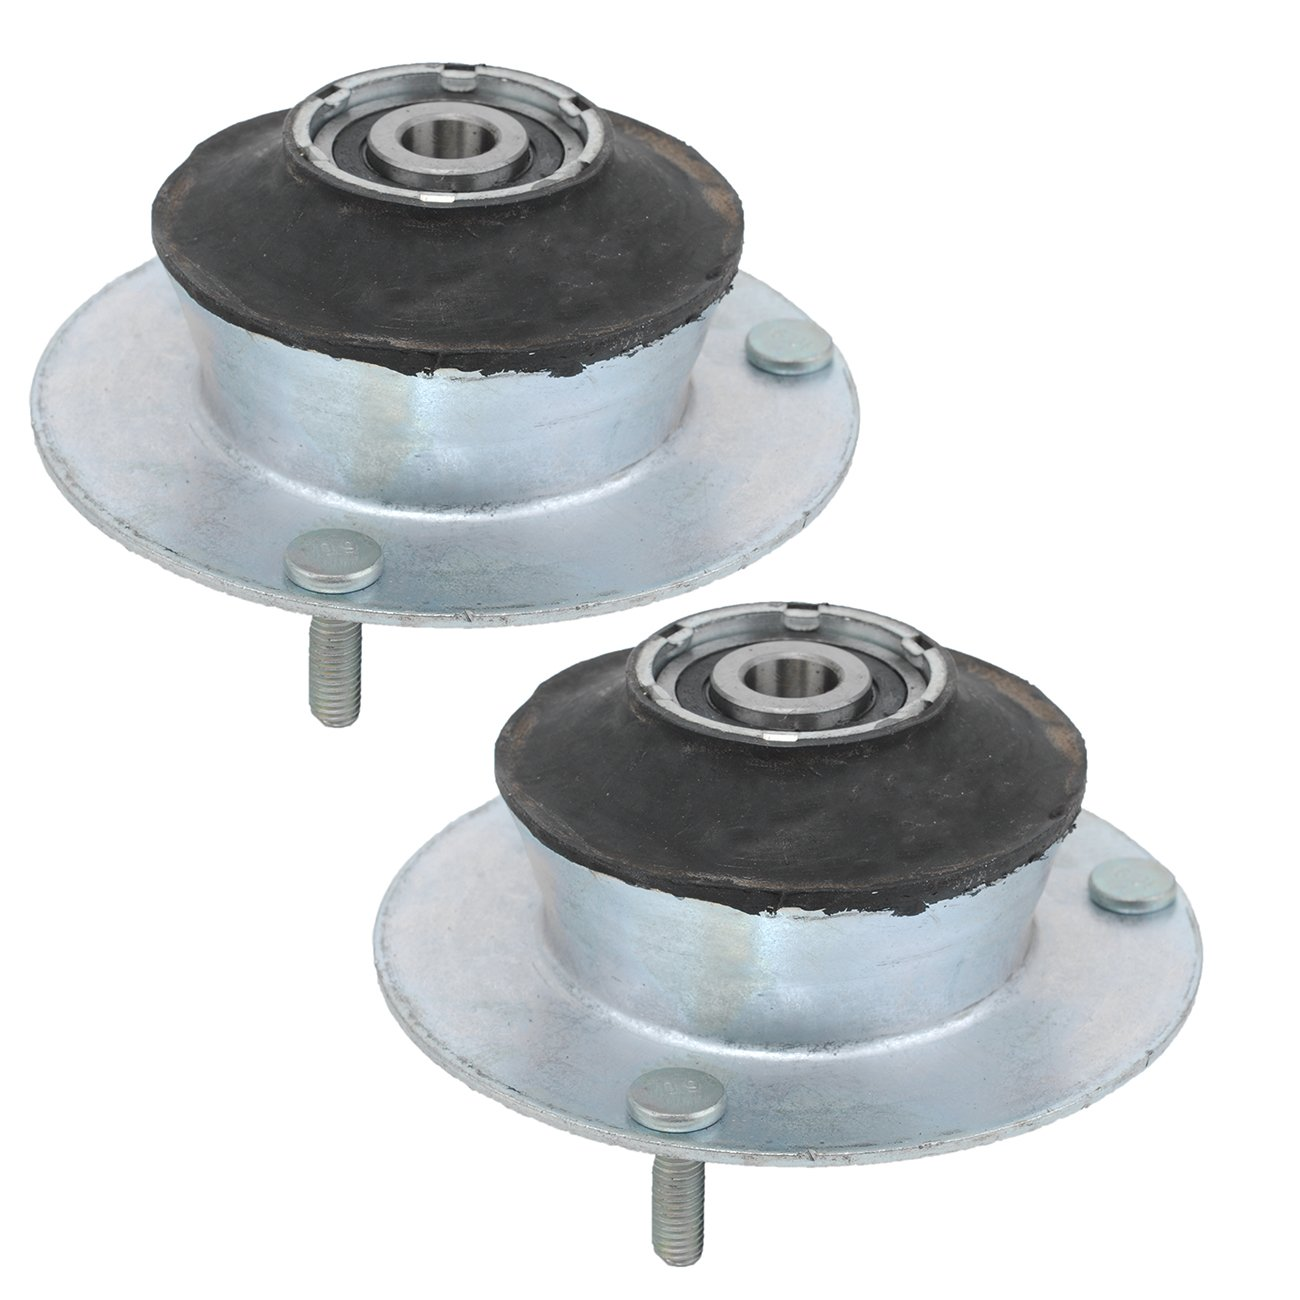 Bapmic 31336779613 Front Strut Shock Mount Bearing for BMW E36 Z3 Z4 (Pack of 2)